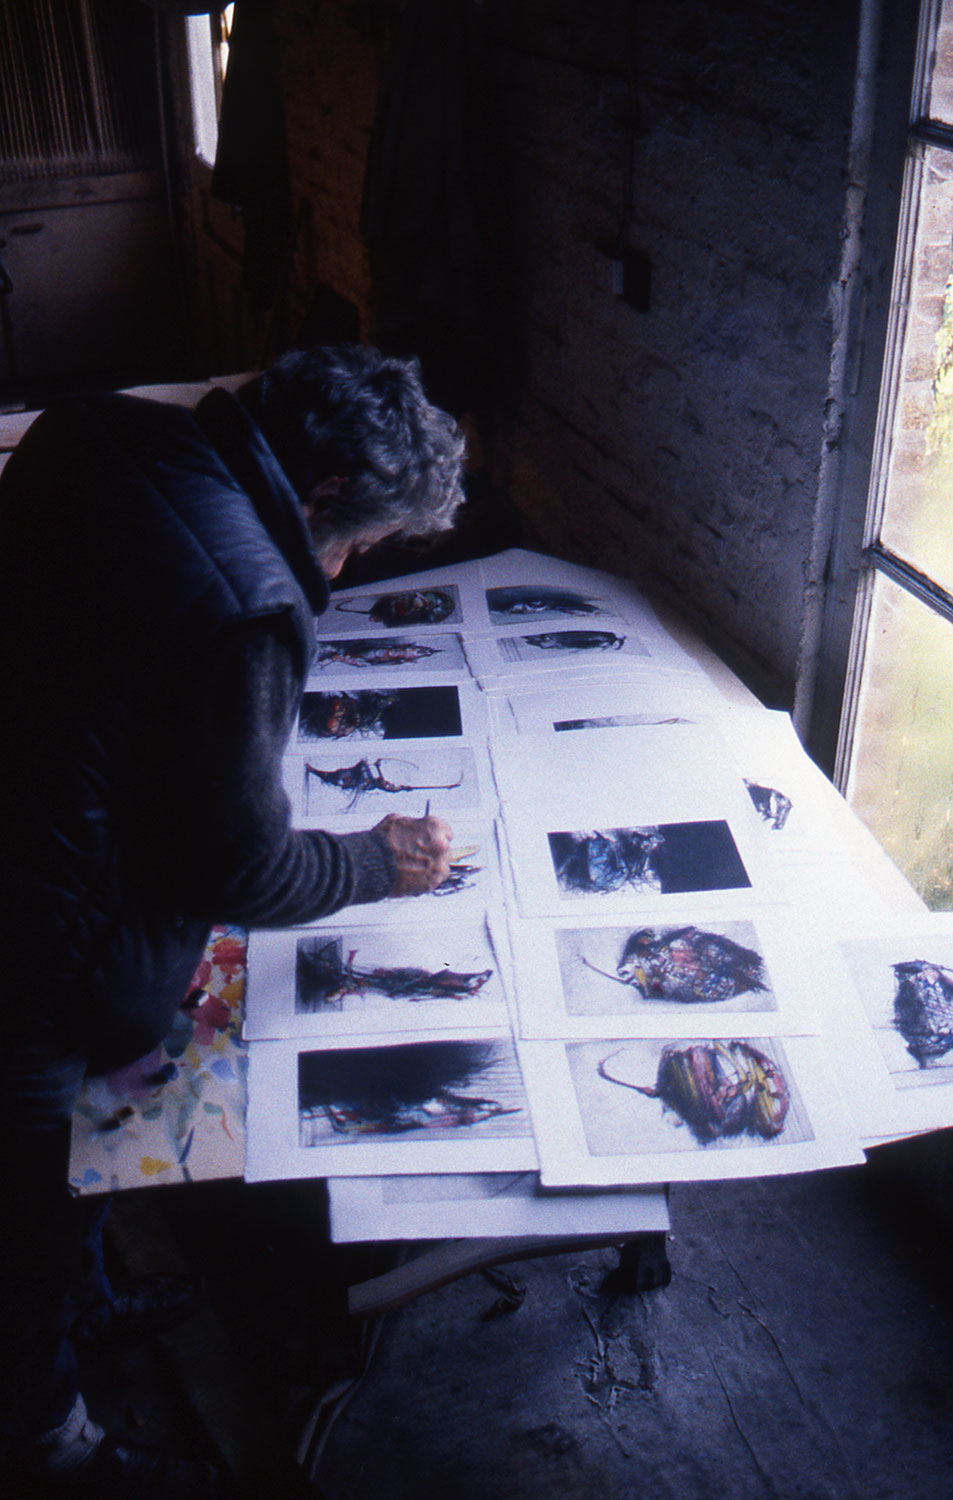 Dado in 1986 embellishing engravings from the Buffon series with gouache